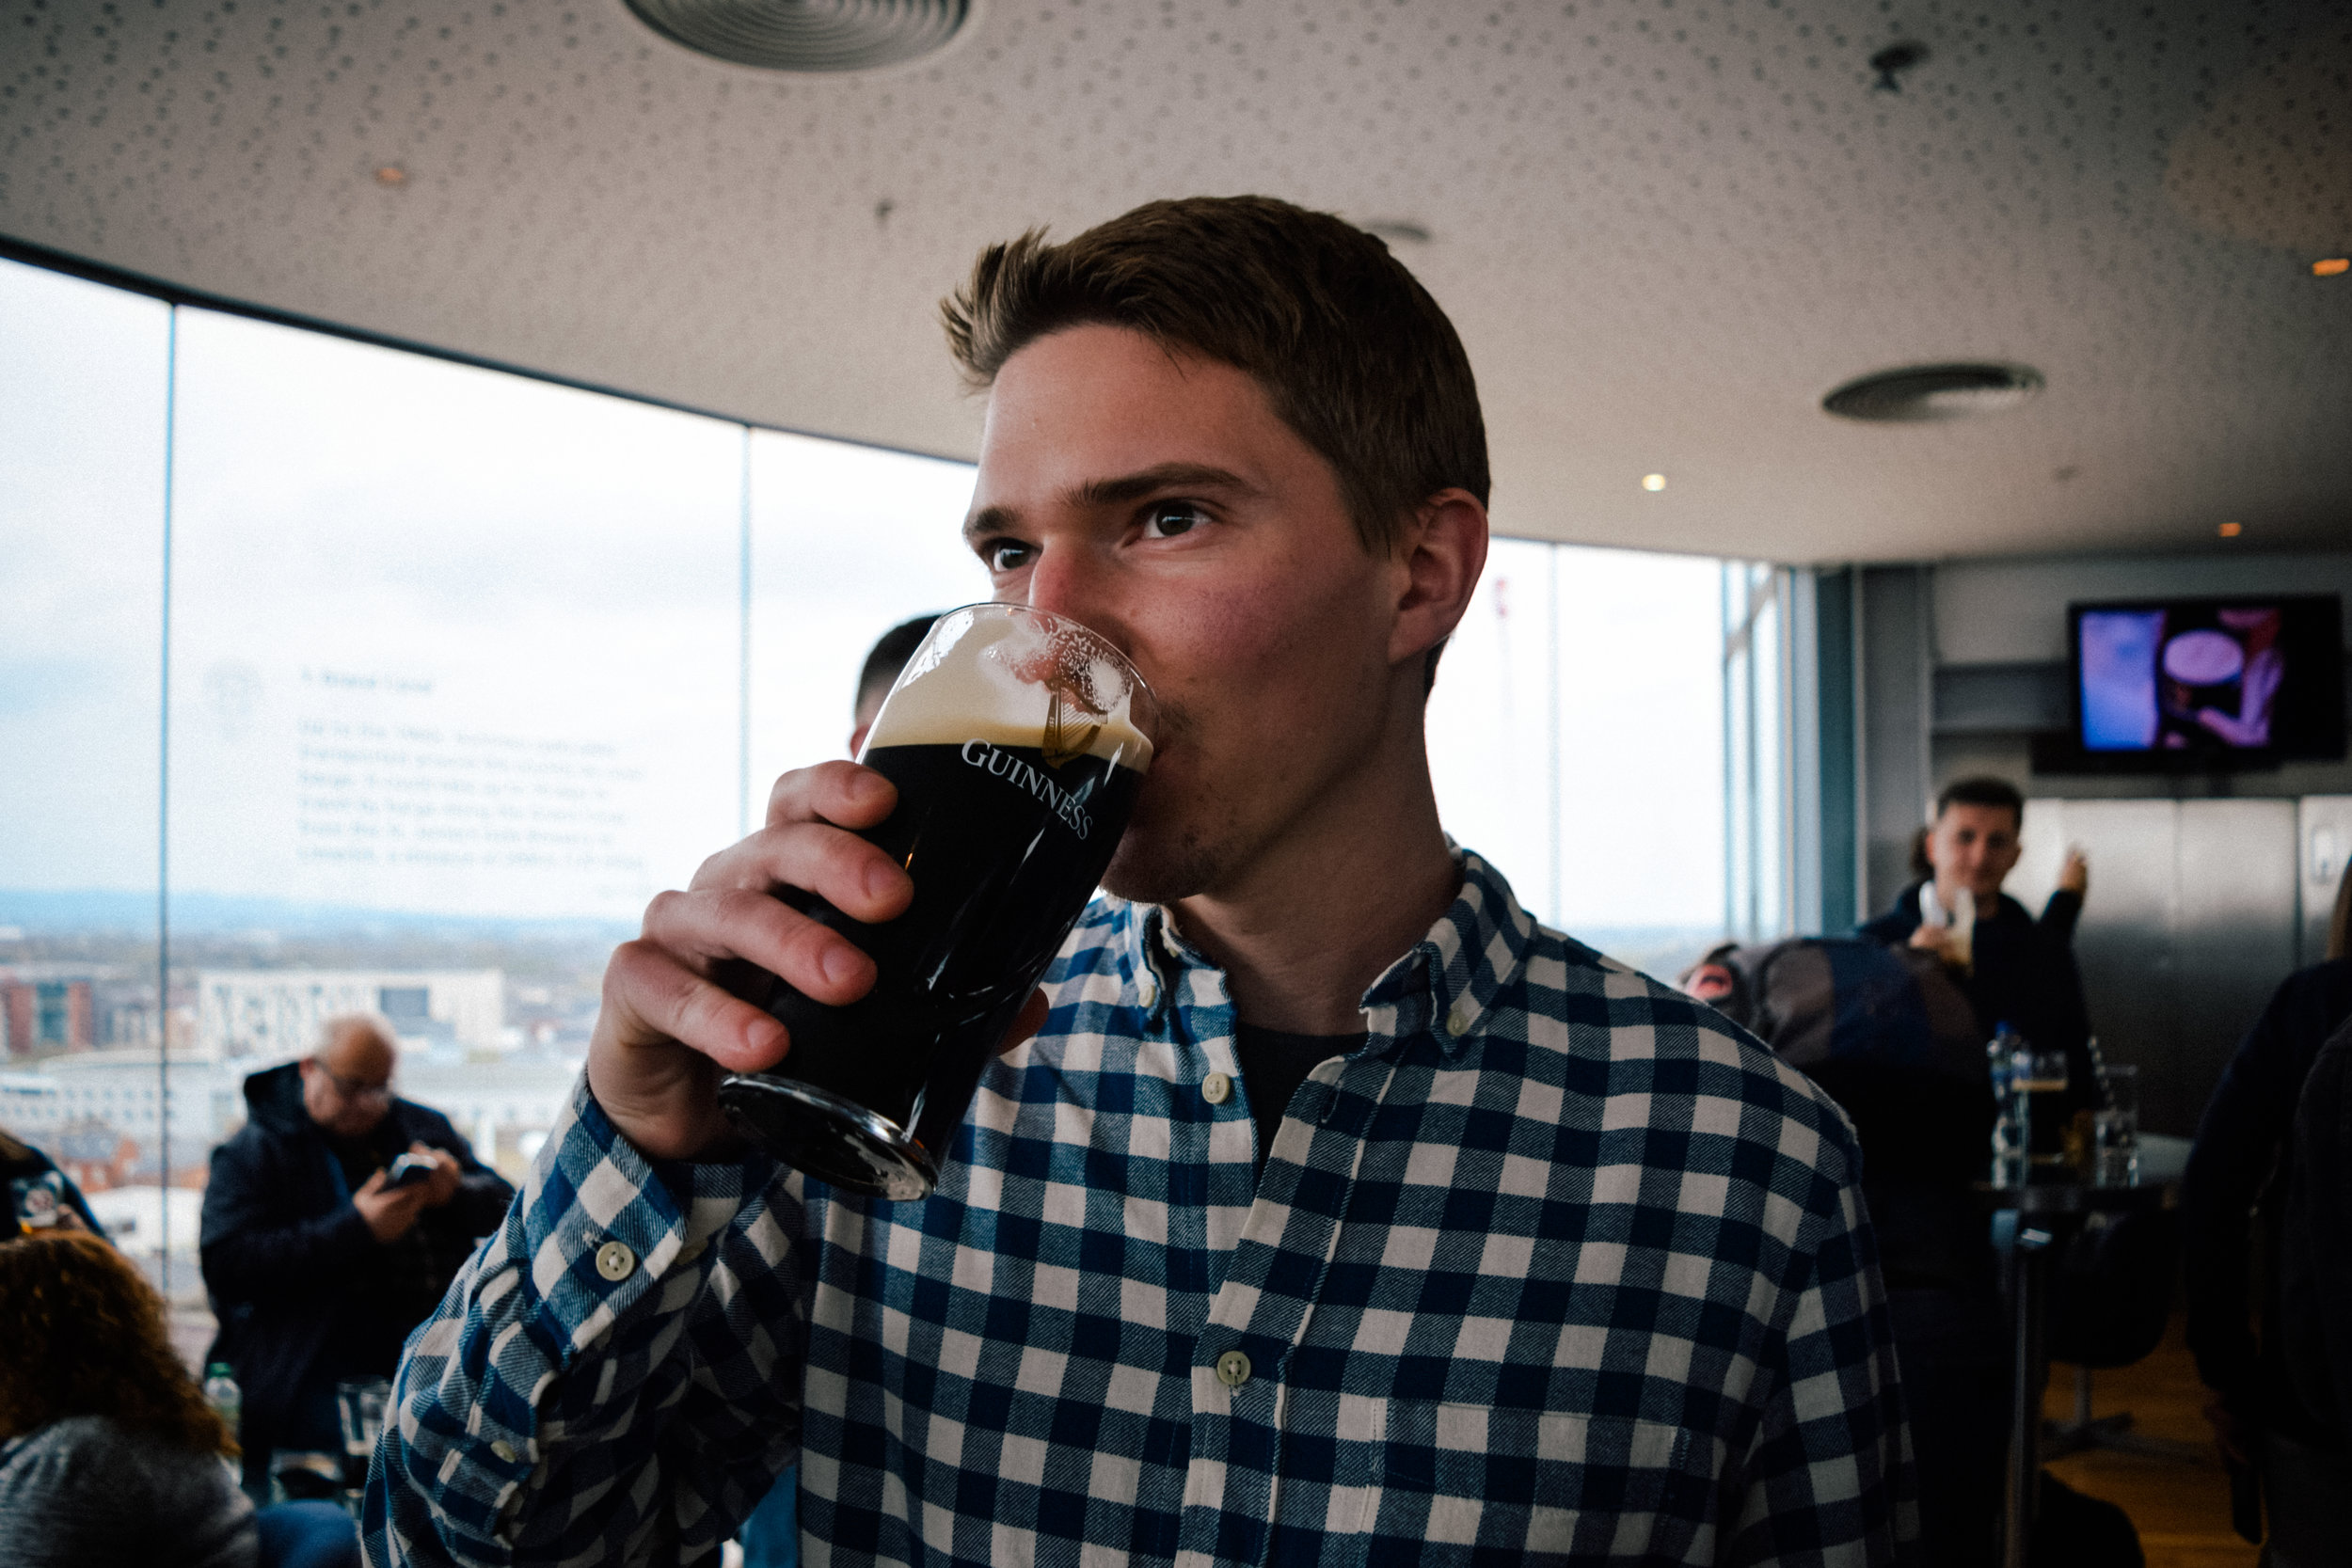 Having a Guinness at the St. James Brewery in Dublin!